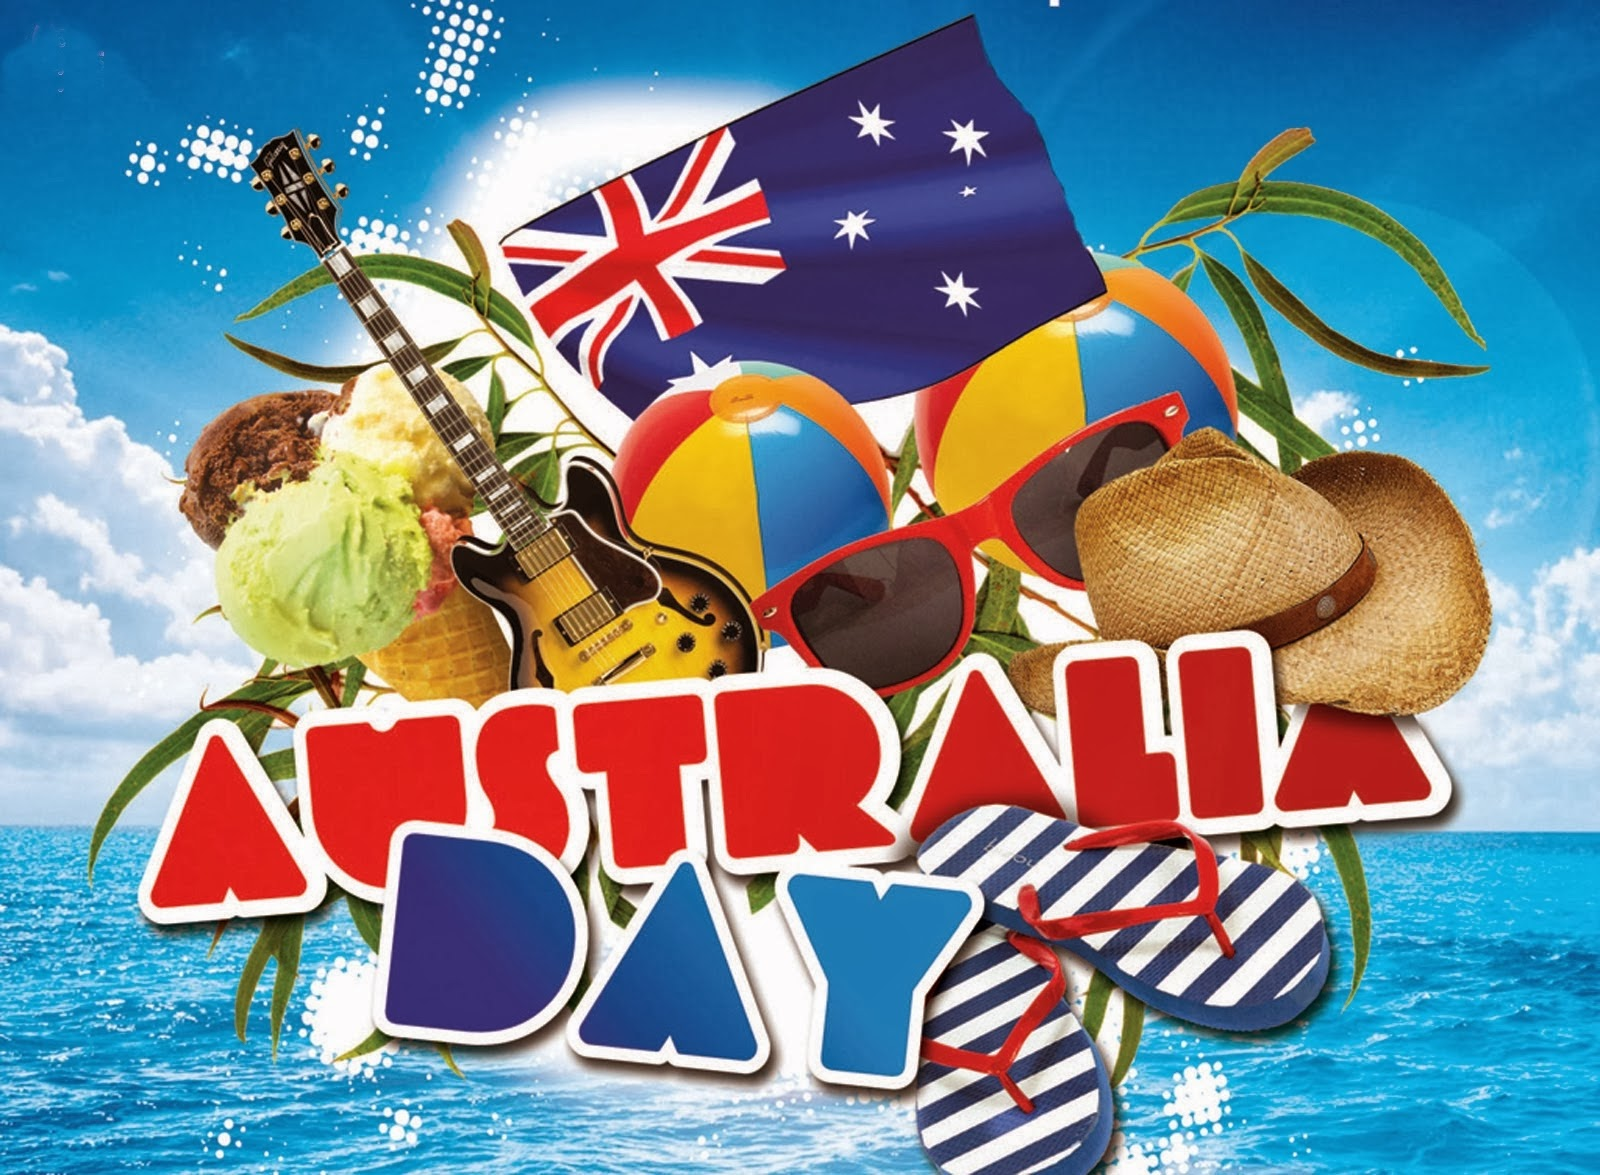 Happy Australia Day 2015 Wishes Greetings Wallpapers Images Sms